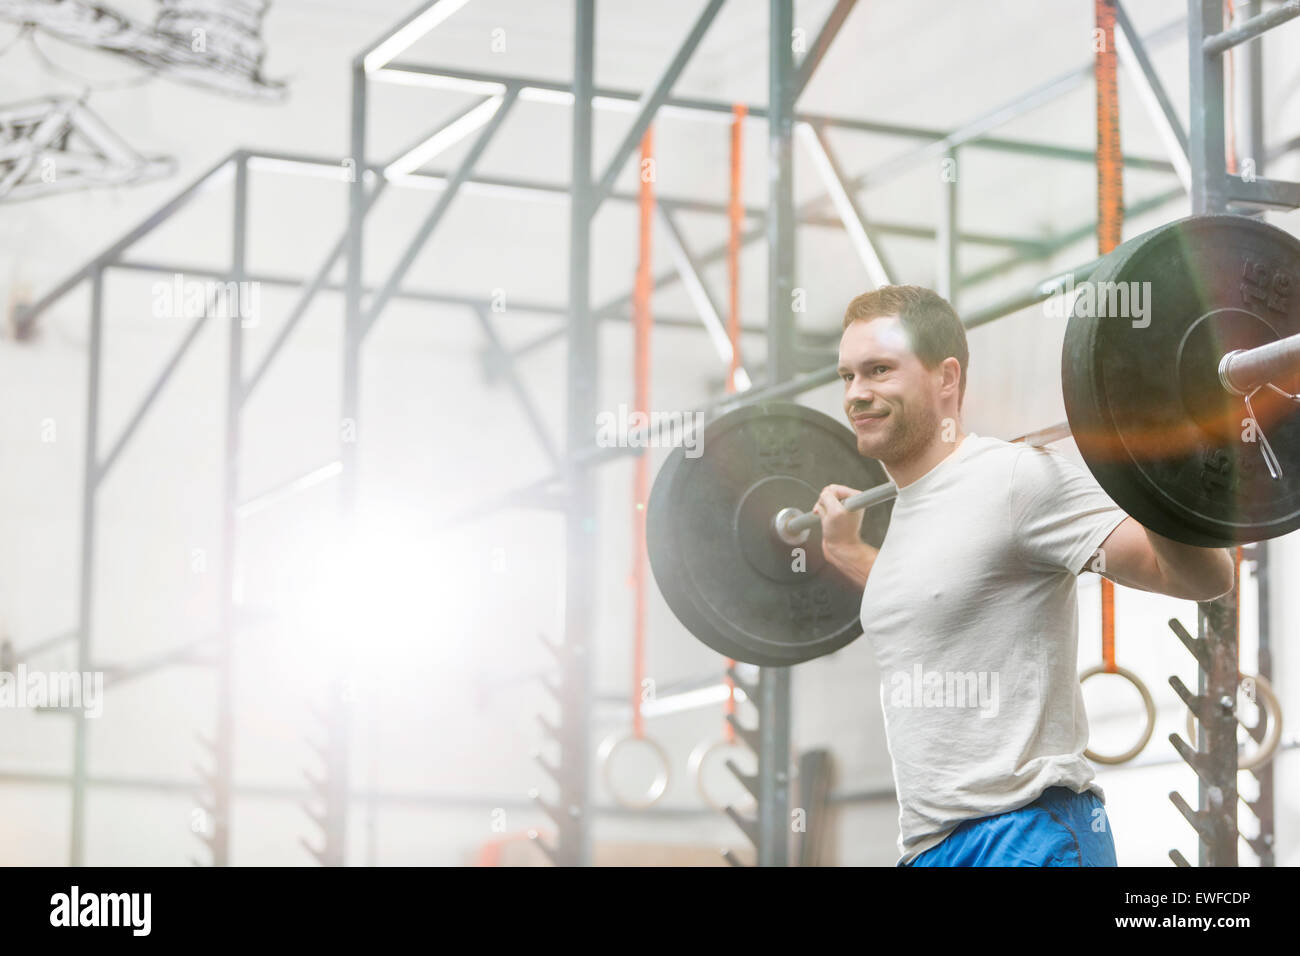 Smiling man lifting barbell at crossfit gym - Stock Image